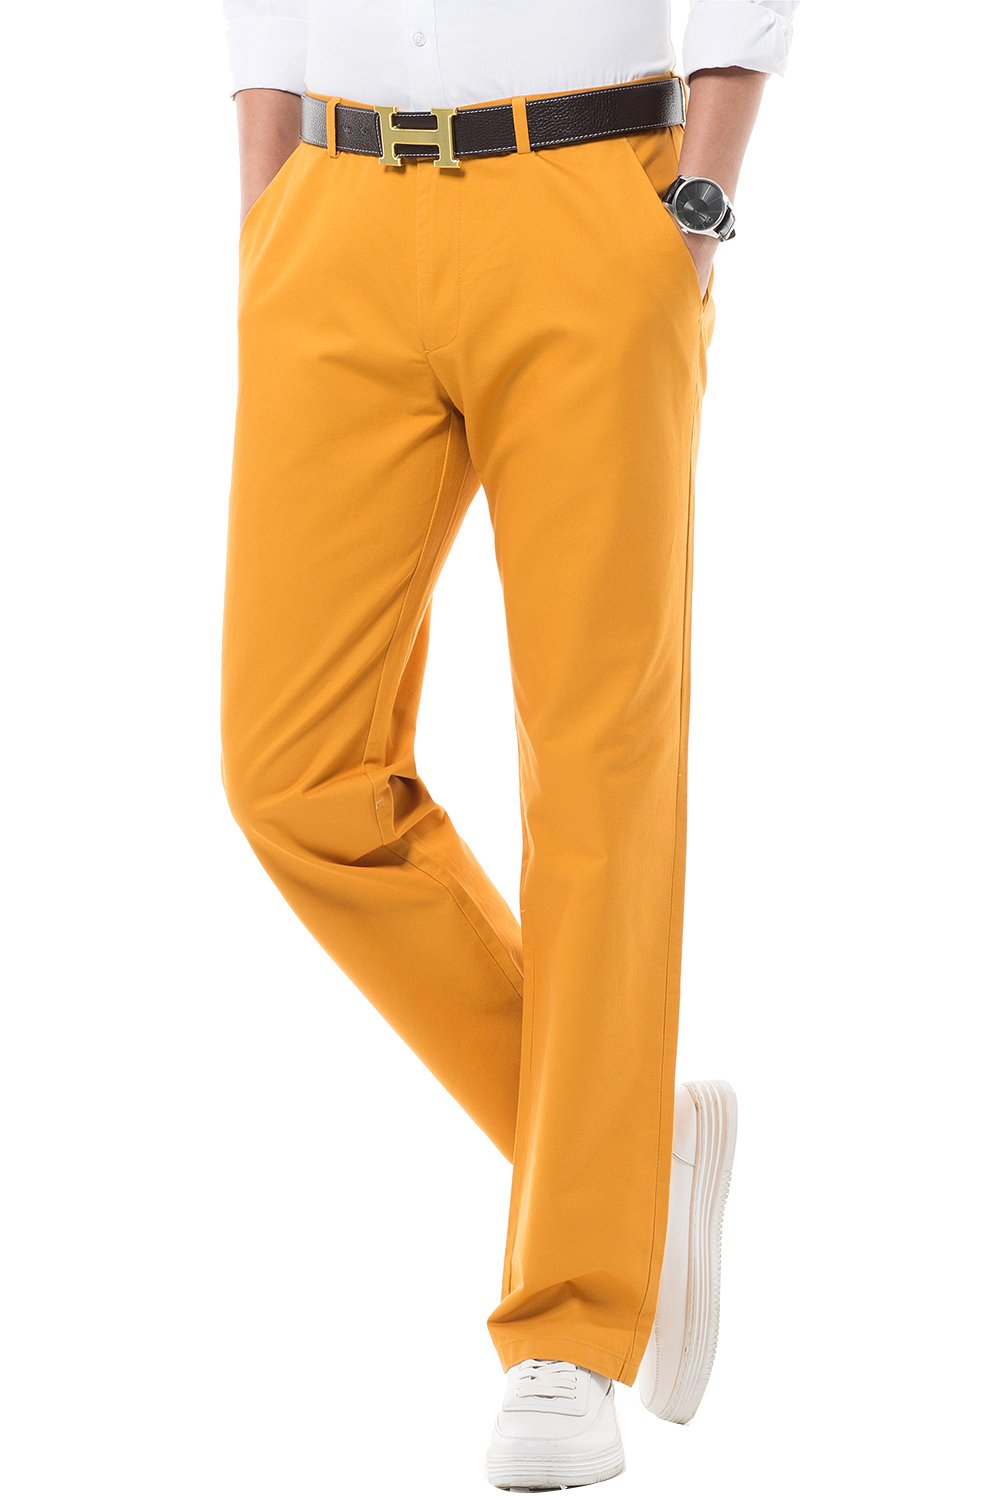 FLY HAWK Business Pure Cotton Casual Pants for Mens, Orange Leisure Soft Pants Size 31 x 33 by FLY HAWK